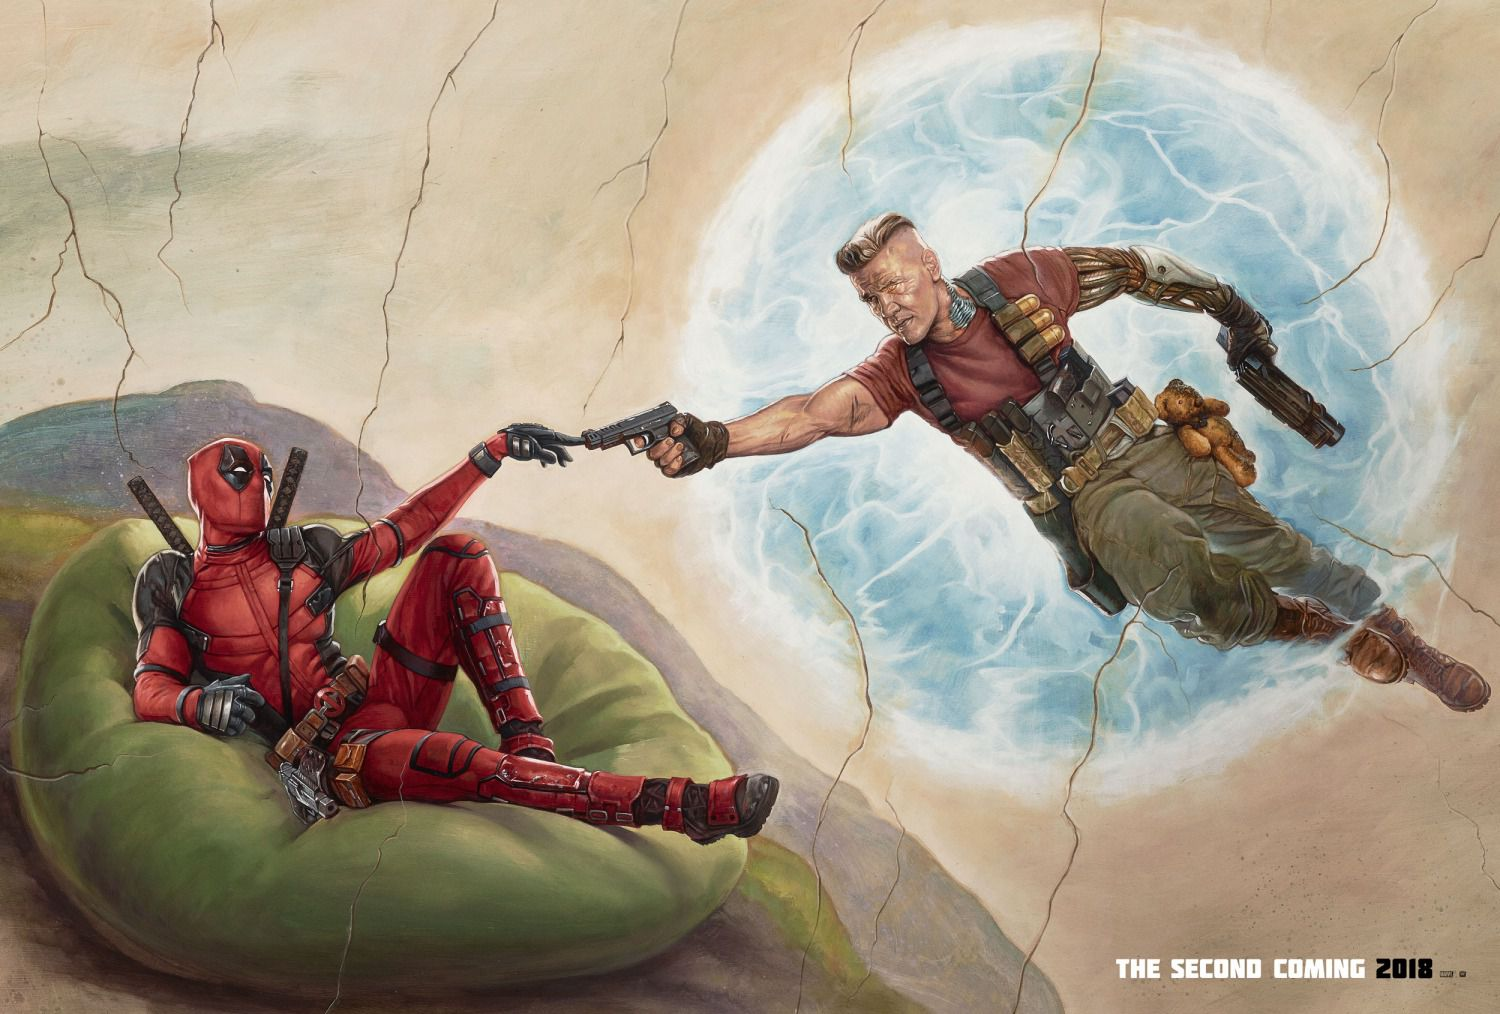 Deadpool 2 - poster - creation - Ryan Reynolds, Josh Brolin